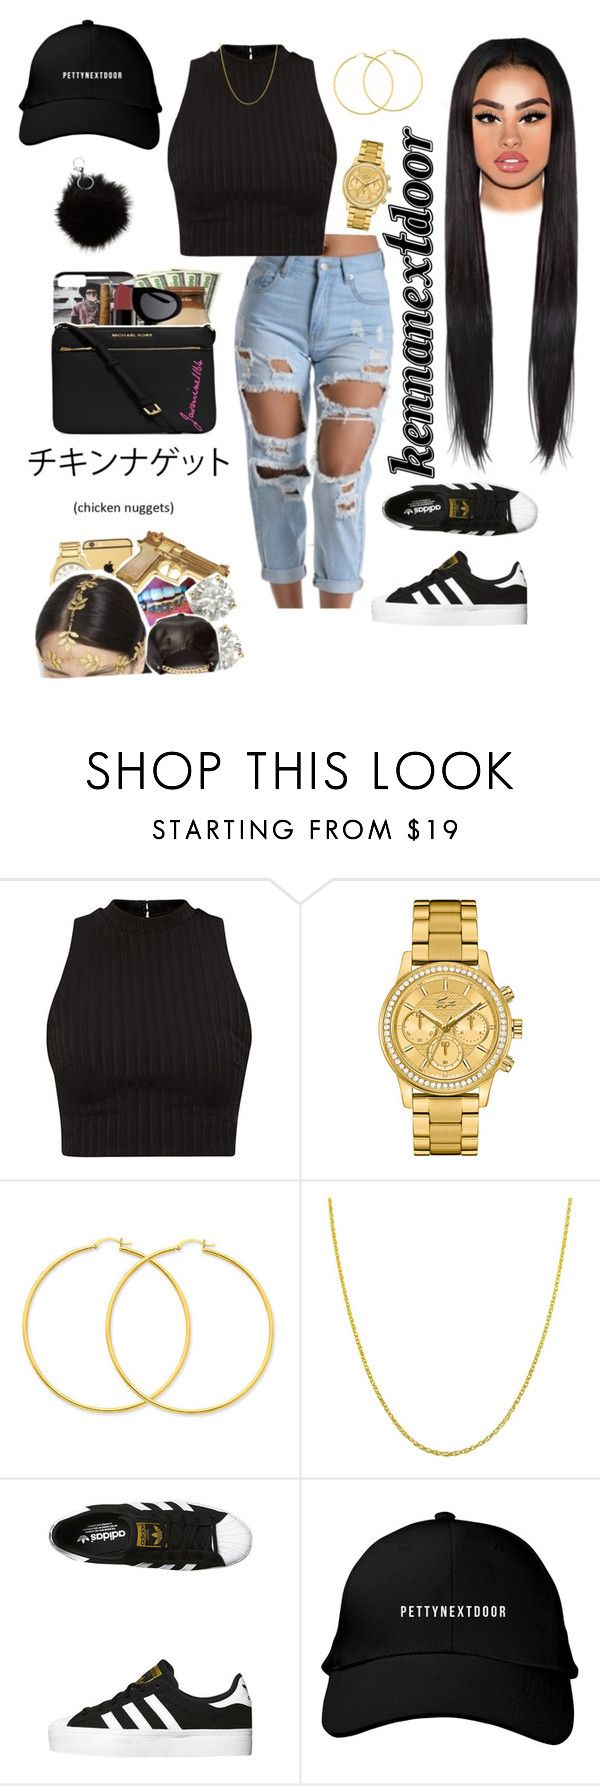 """""""Broccoli - D.R.A.M x Lil Yachty"""" by kennanextdoor ❤ liked on Polyvore featuring Lacoste, Fremada and adidas Originals"""